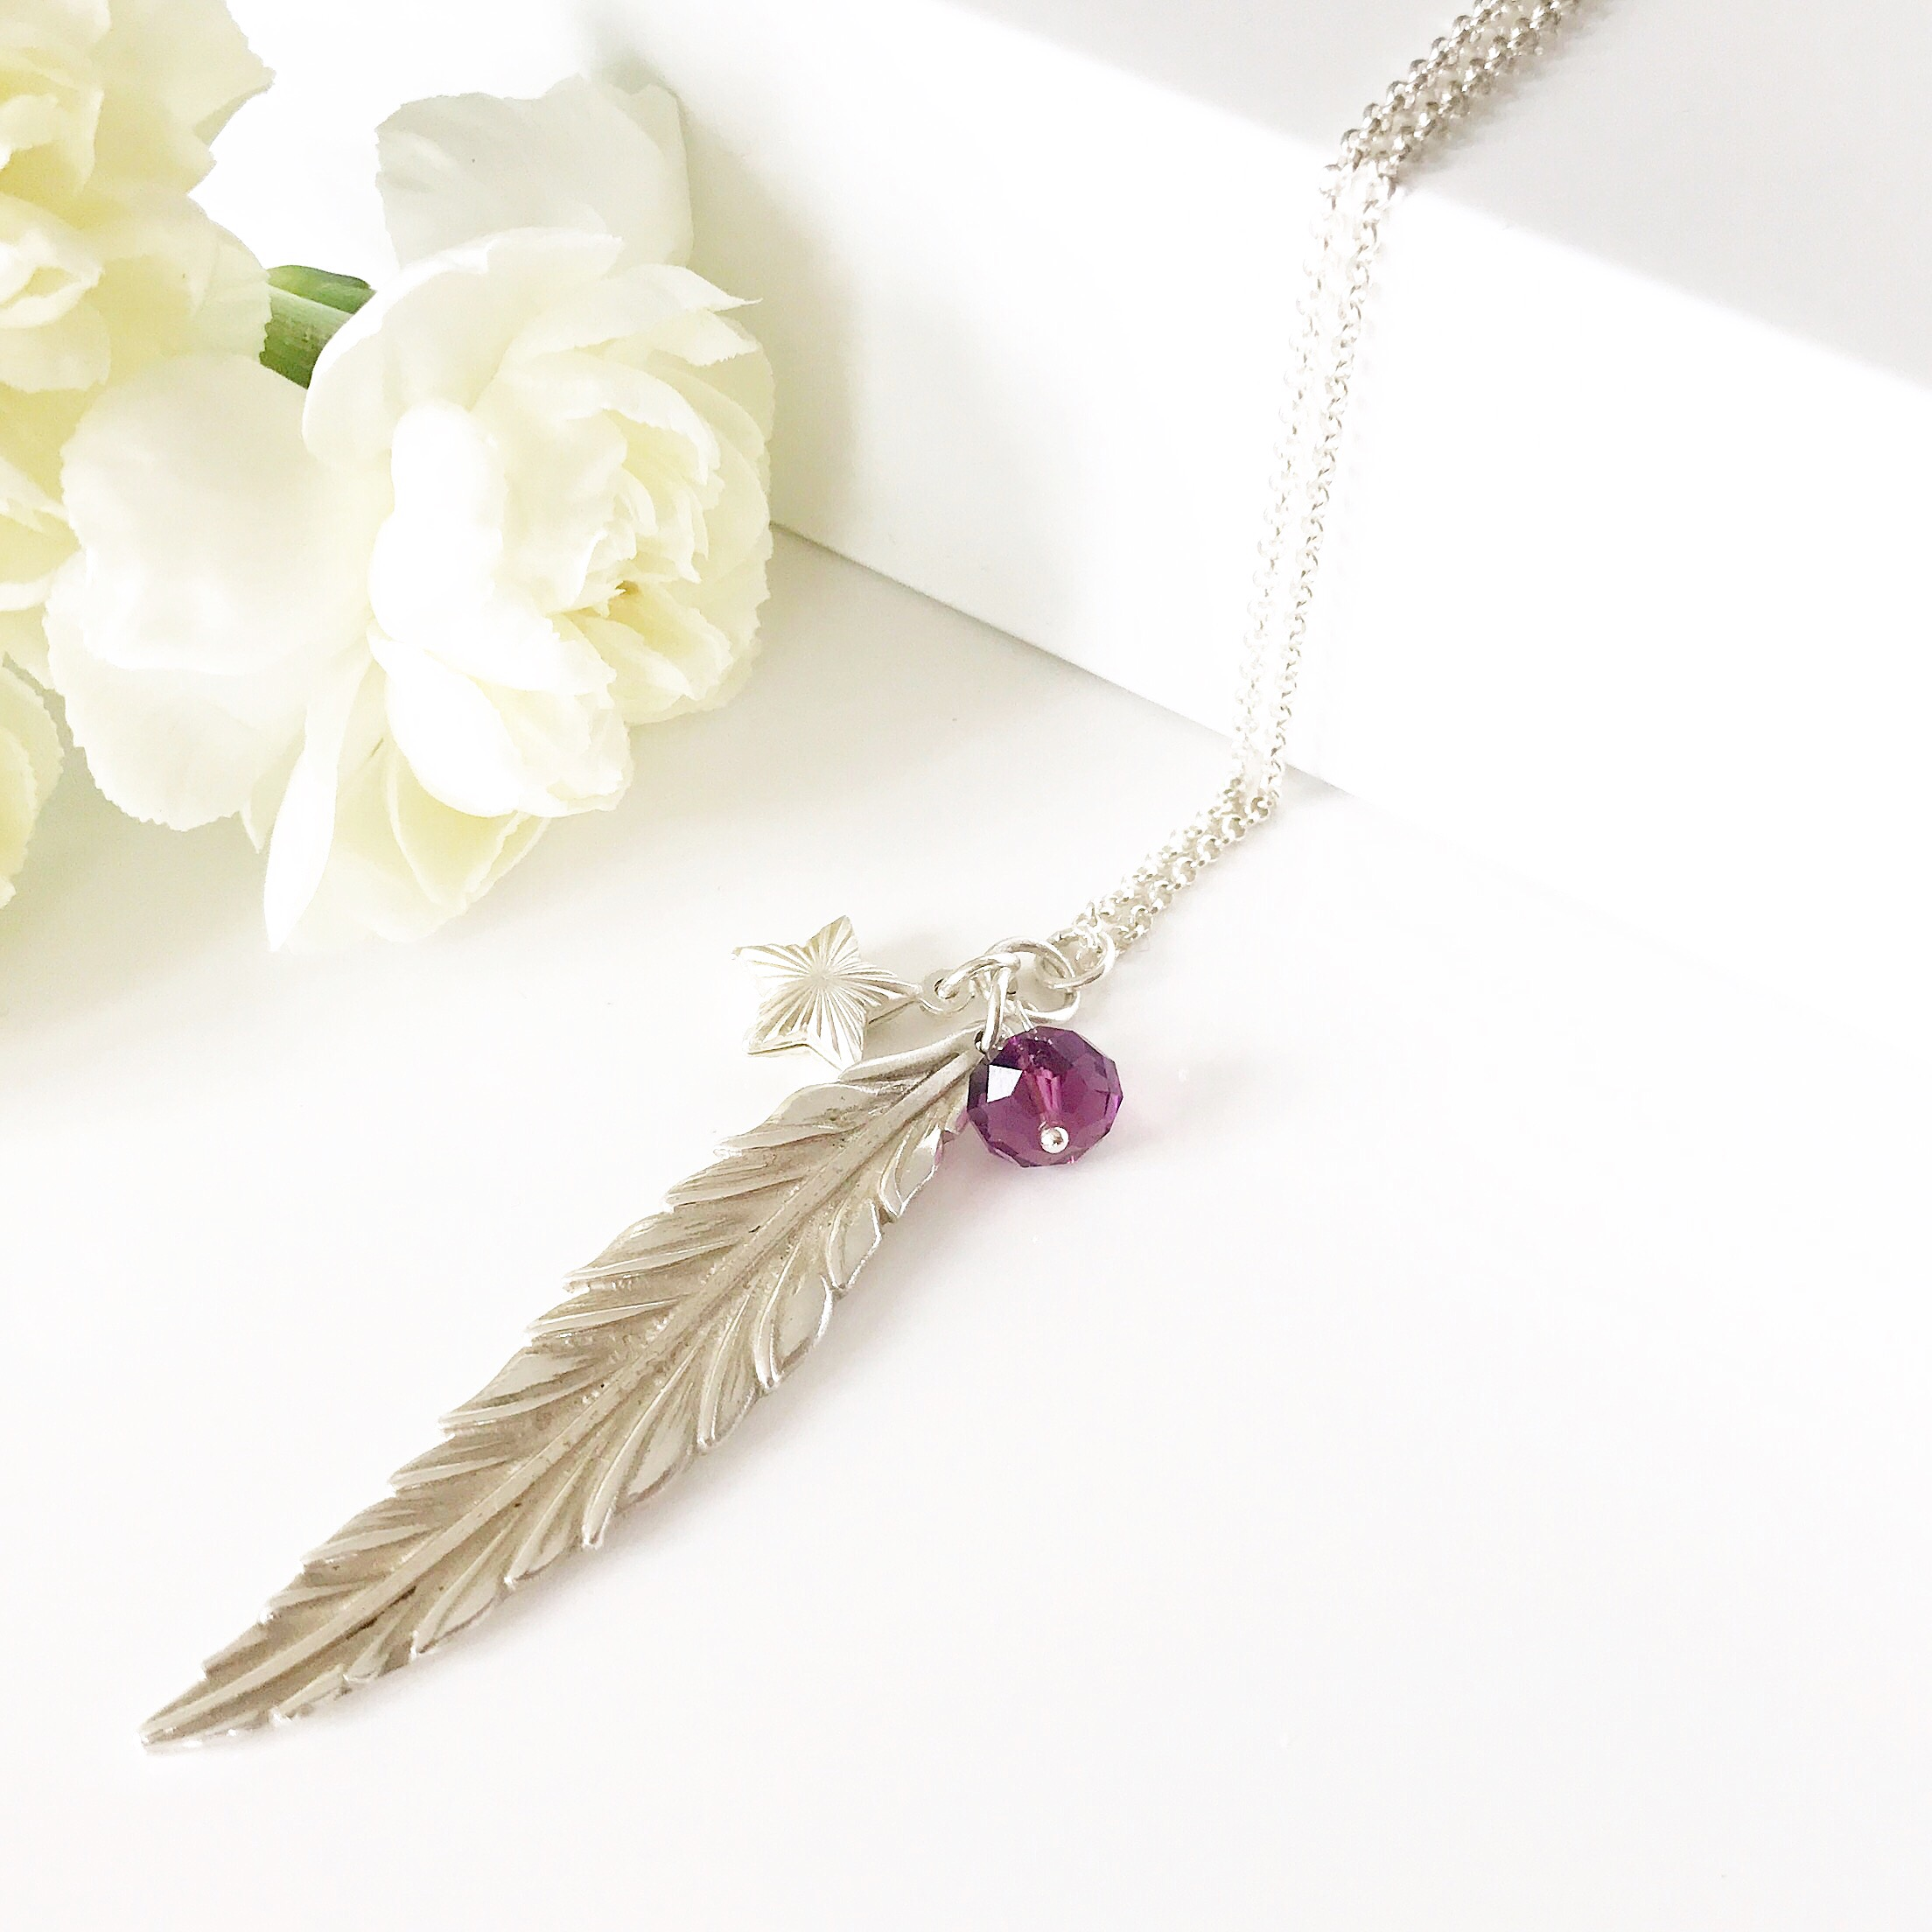 Feather Necklace with Amethyst Colour | By Me Me Jewellery